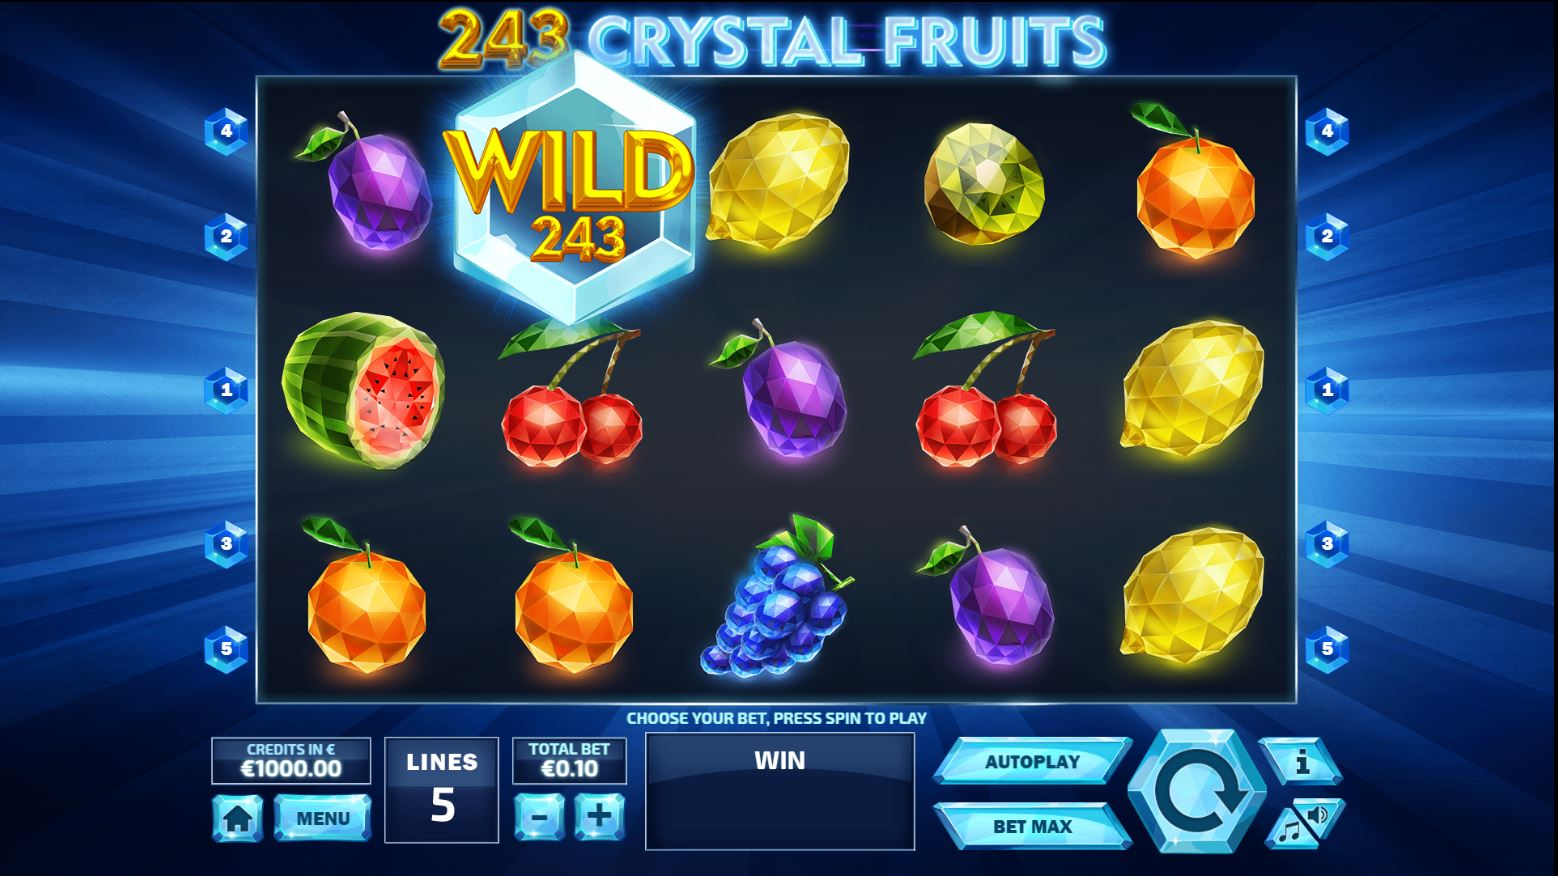 243 crystal fruits gameplay